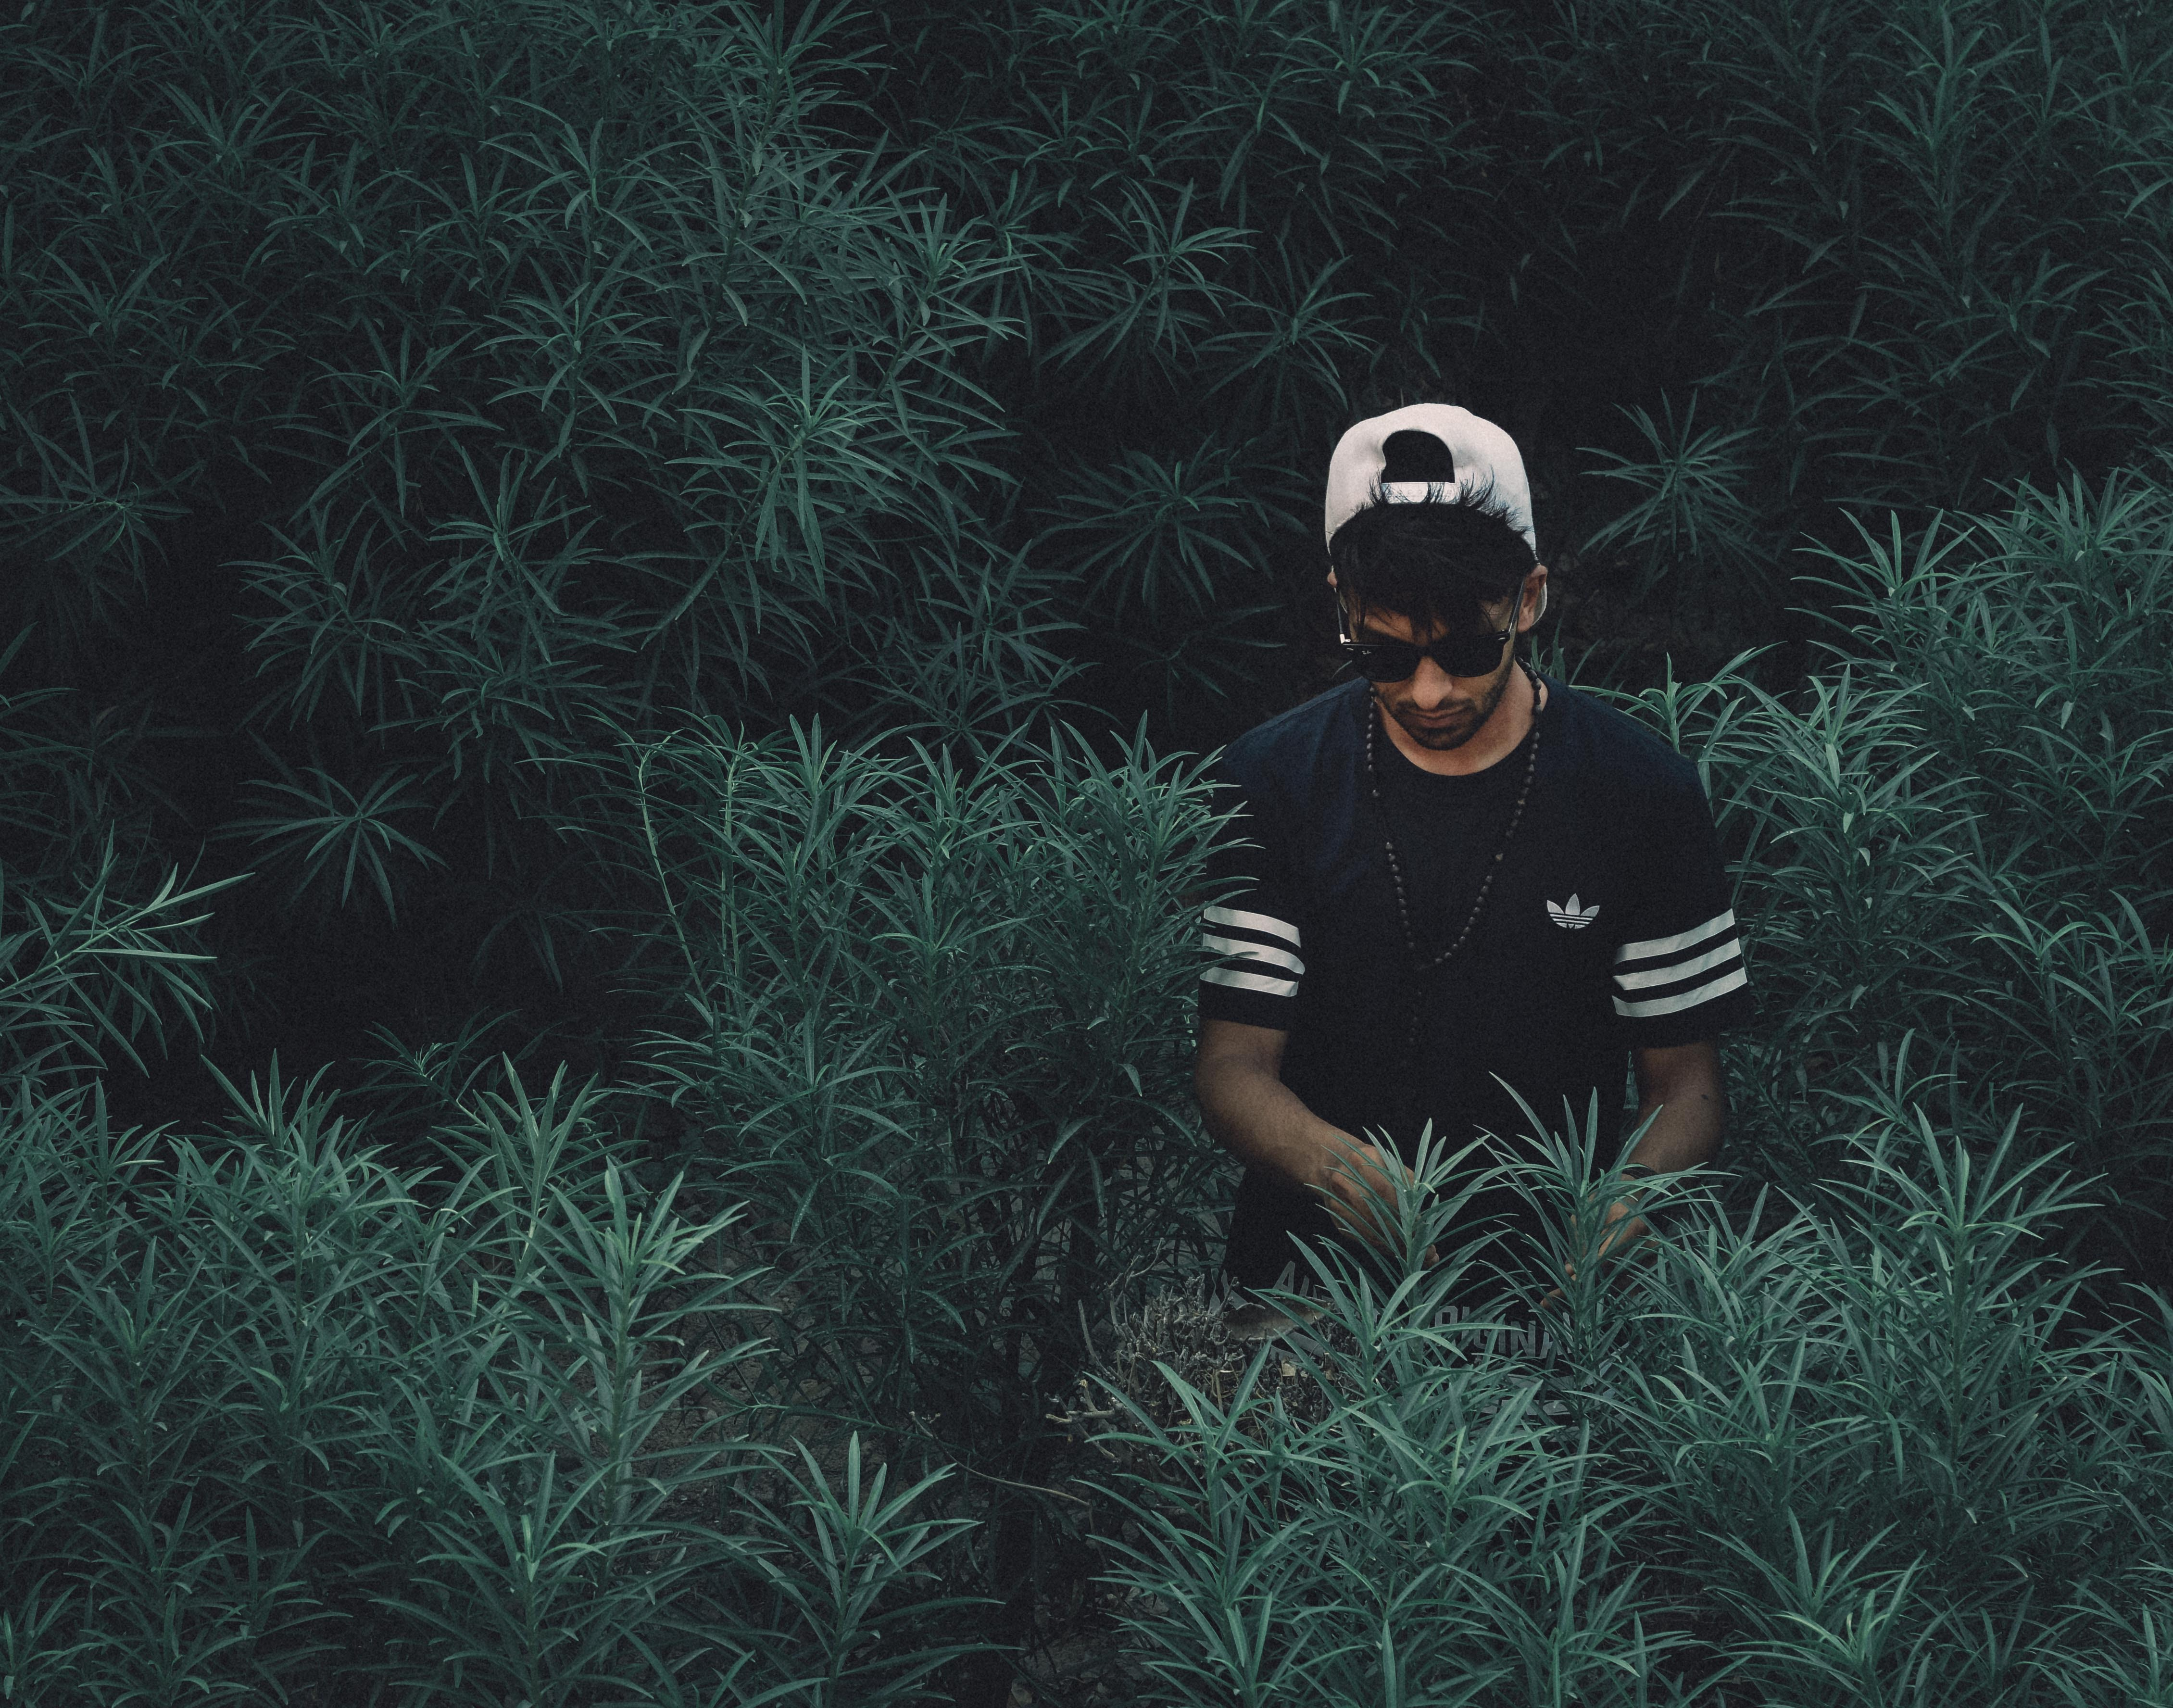 Trendy man in an adidas shirt standing among green leafy plants